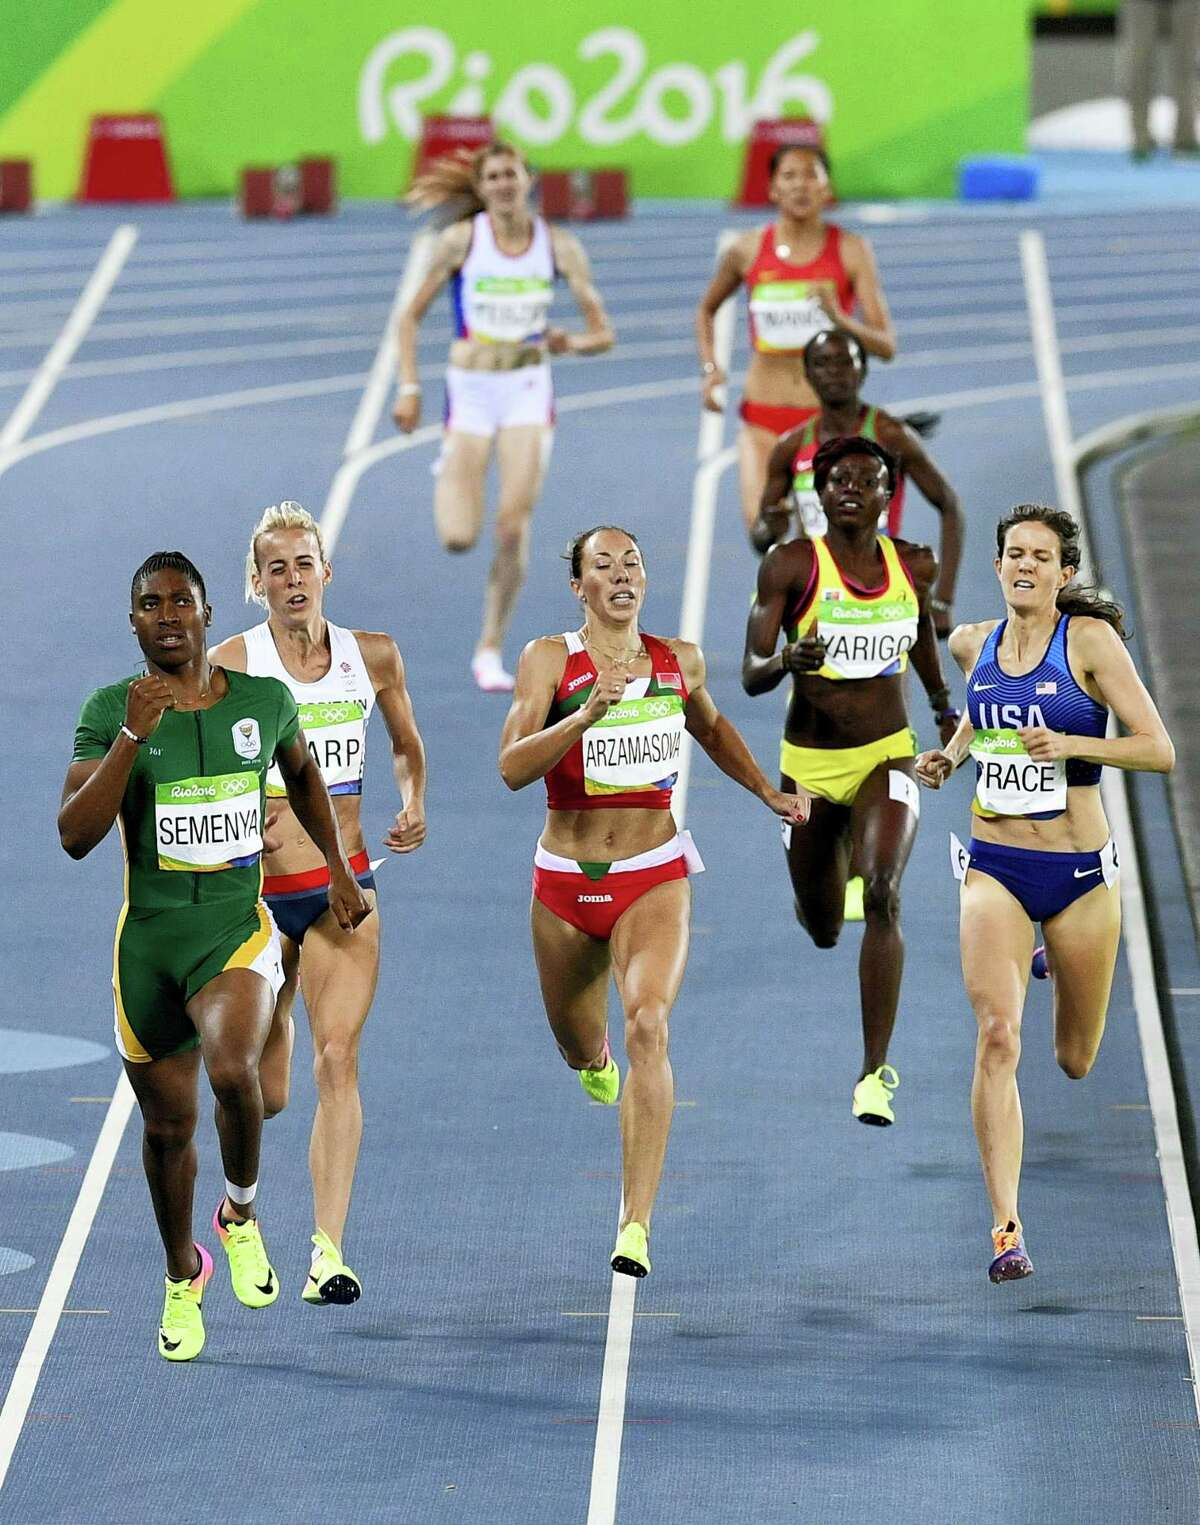 South Africa's Caster Semenya, left, Britain's Lynsey Sharp, second left, Belarus' Marina Arzamasova, center, and United States' Kate Grace, right, compete in a women's 800-meter semifinal on Thursday.